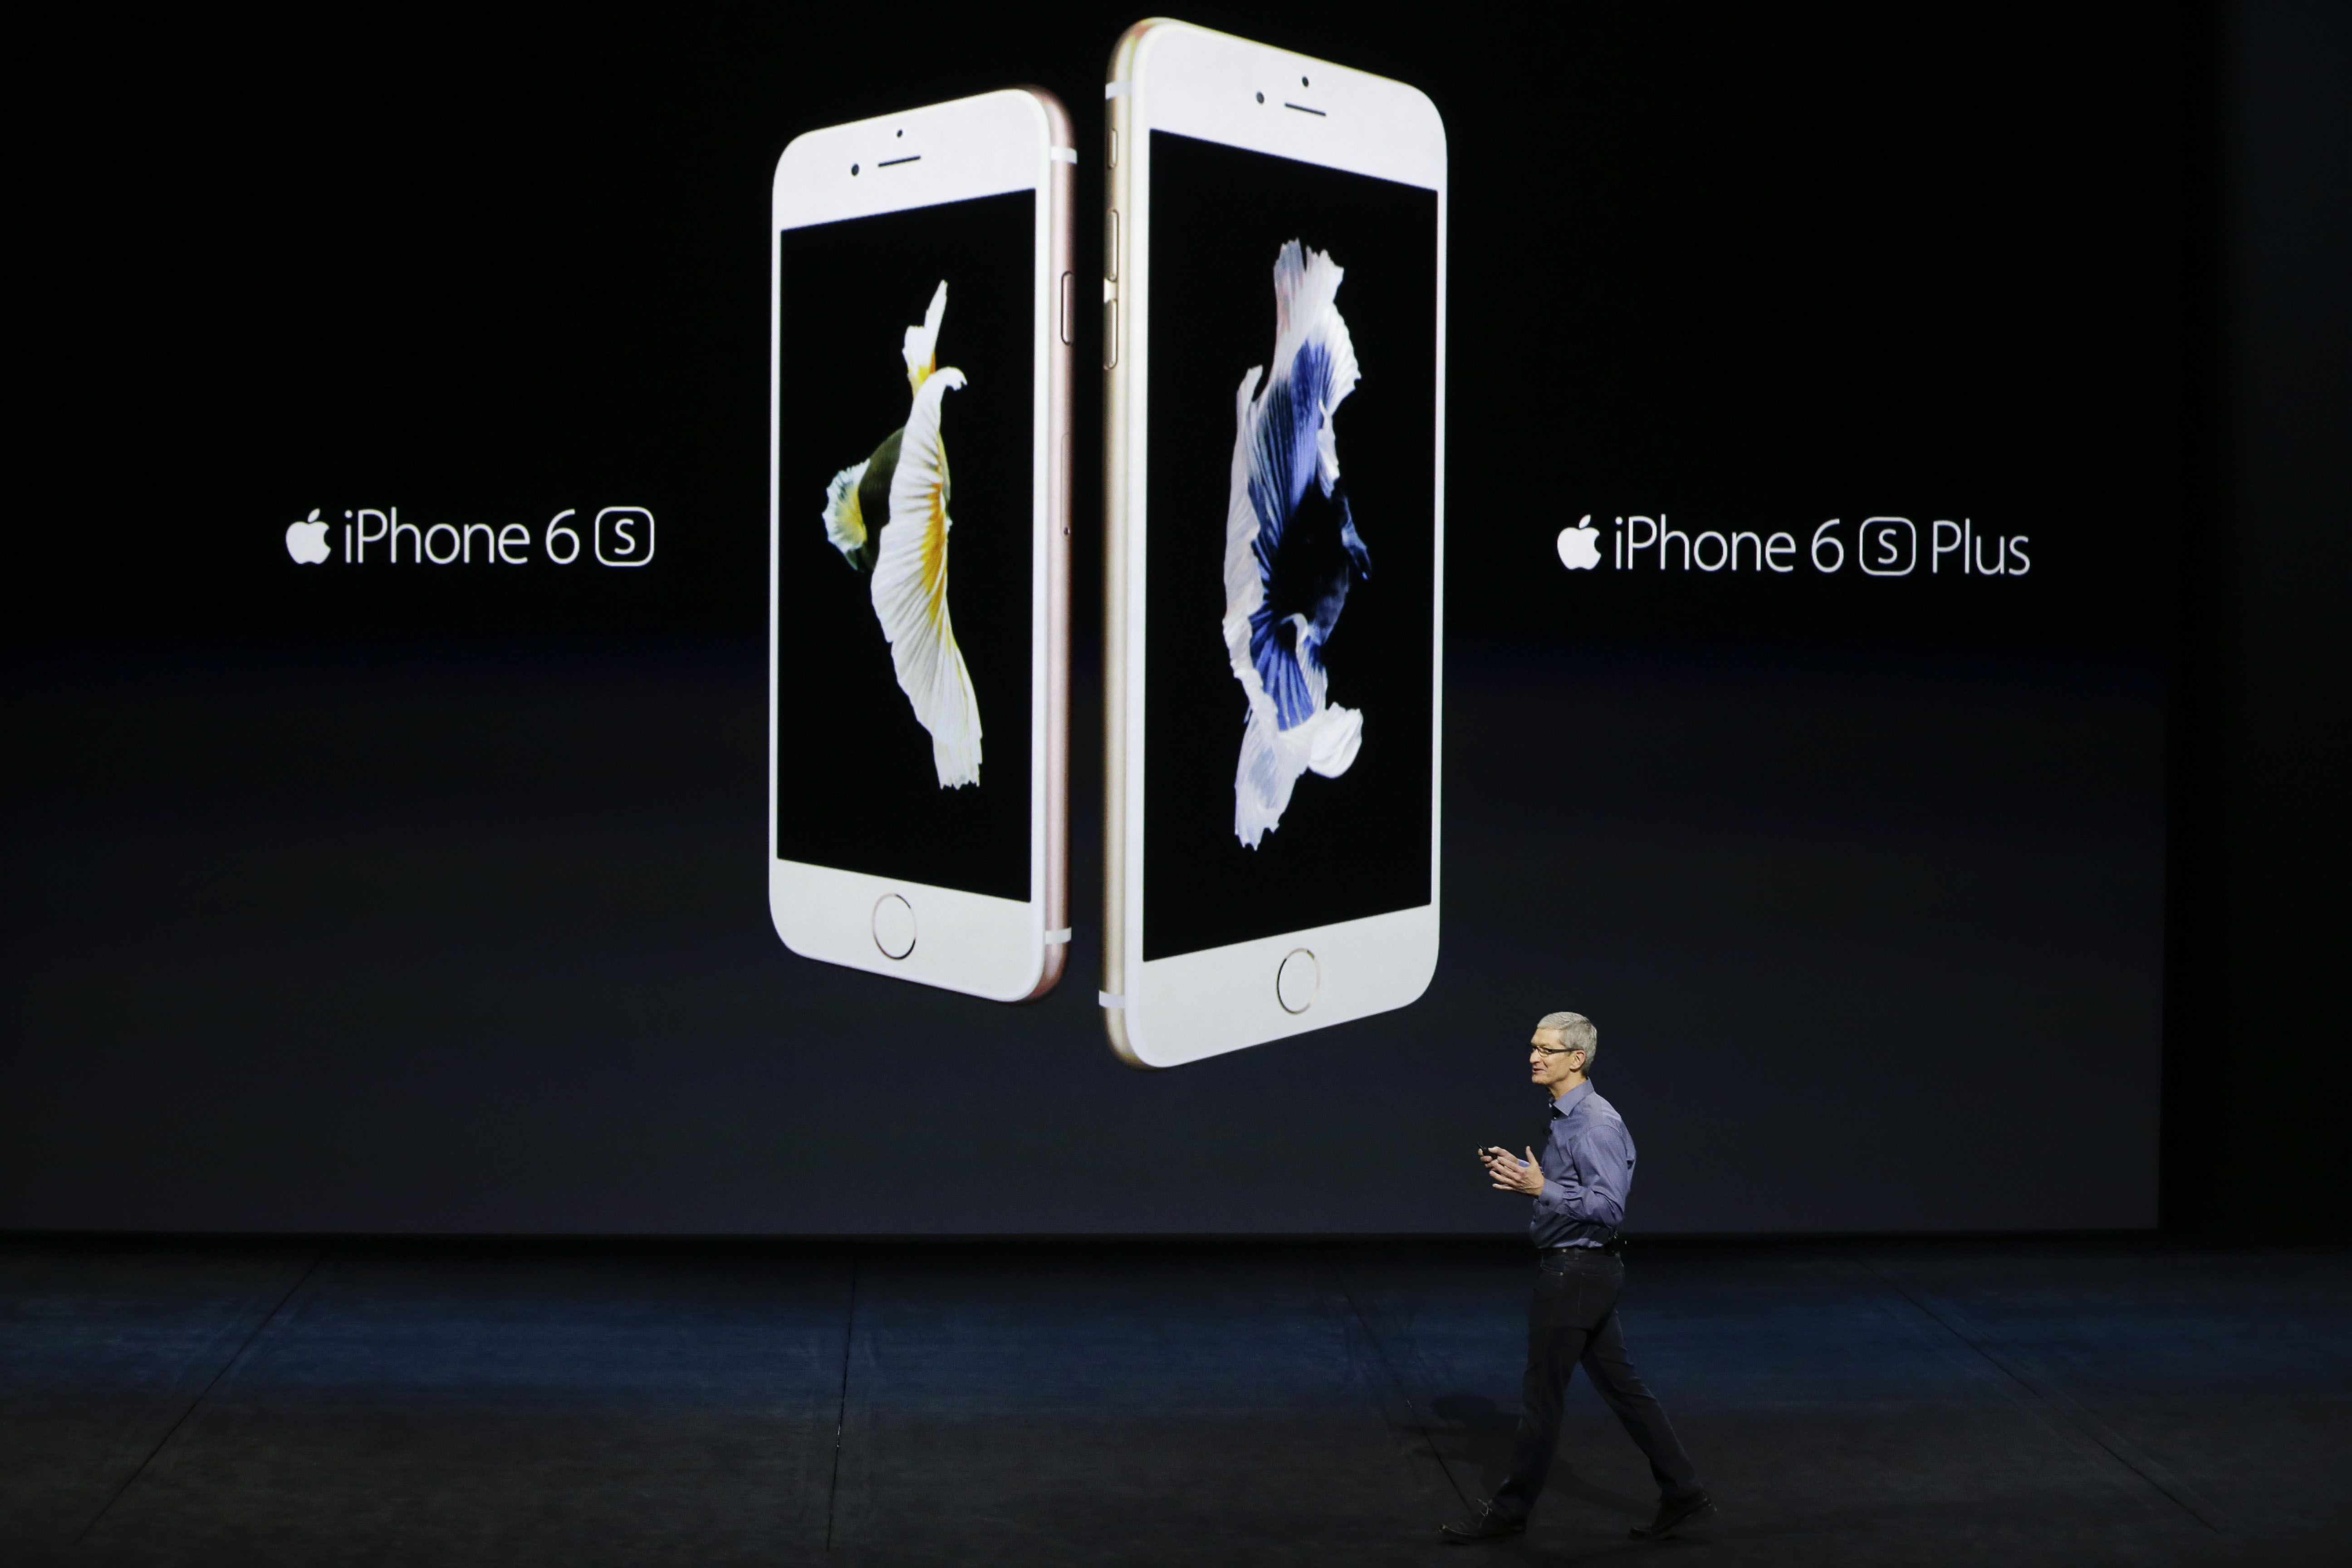 FILE - Apple CEO Tim Cook discusses the new iPhone 6s and iPhone 6s Plus during the Apple event at the Bill Graham Civic Auditorium in San Francisco, on Wednesday, September 9, 2015. Photo: AP